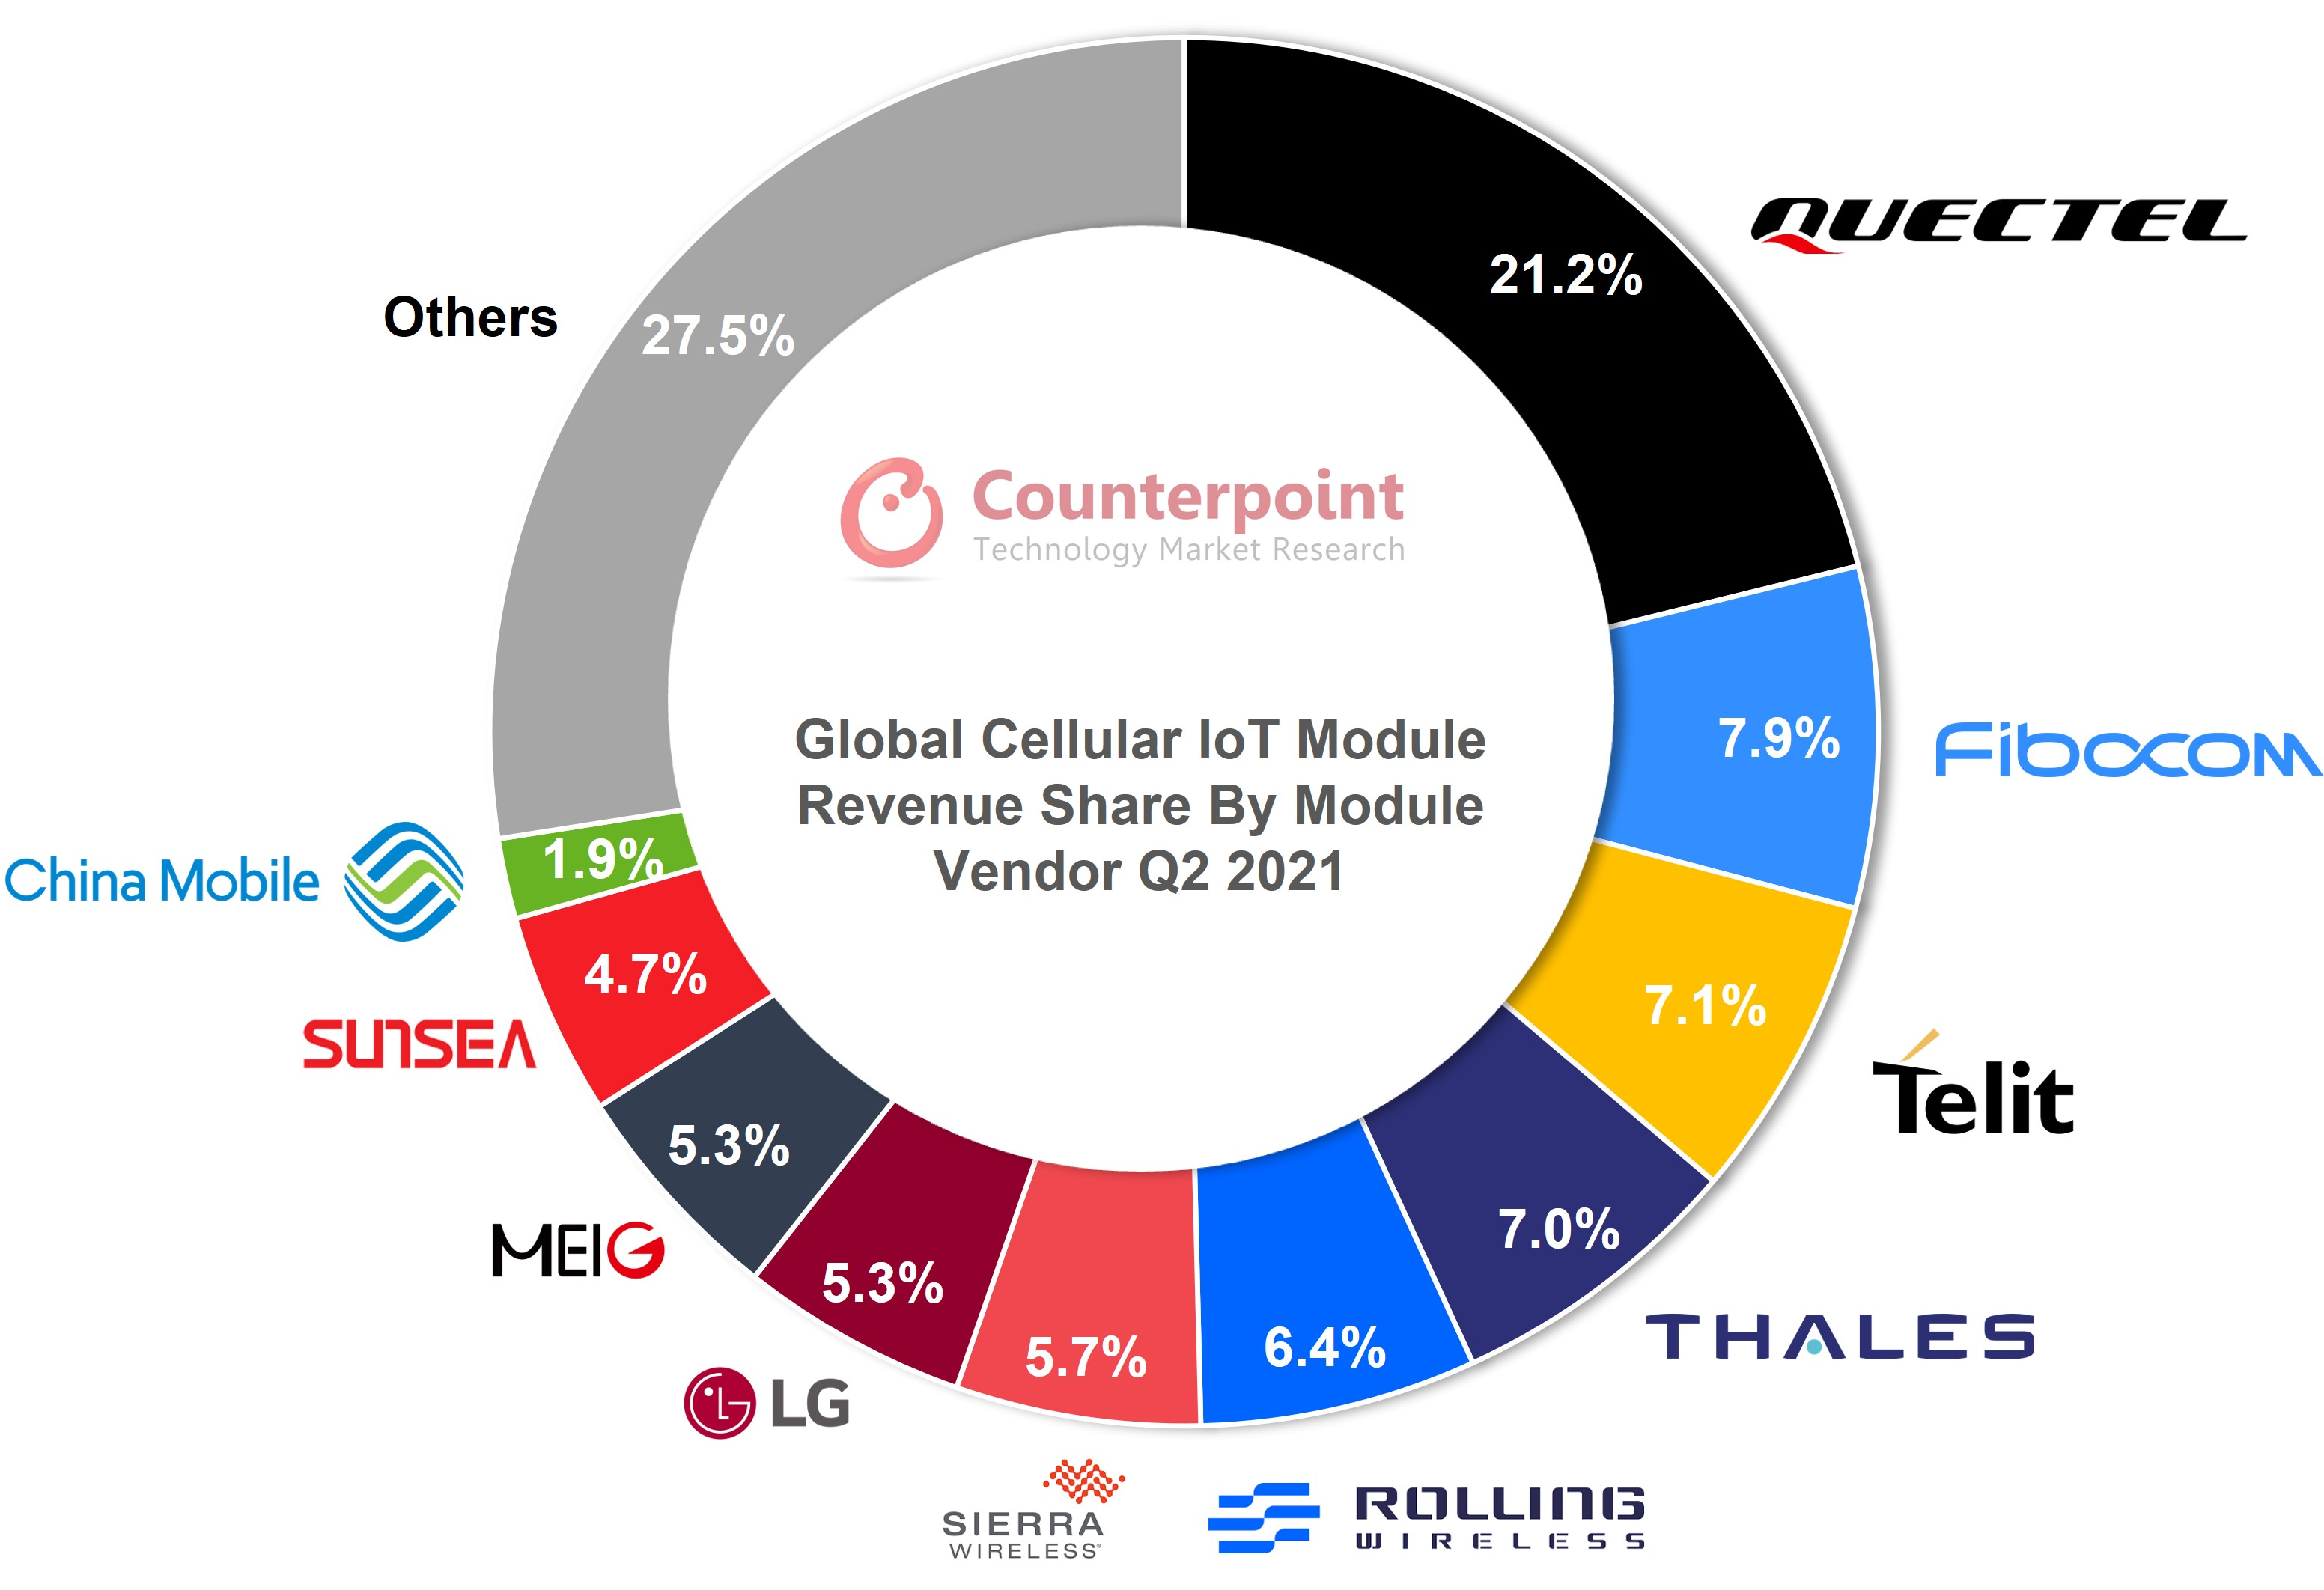 Counterpoint Cellular IoT Module Market Share by Module Vendor Q2 2021